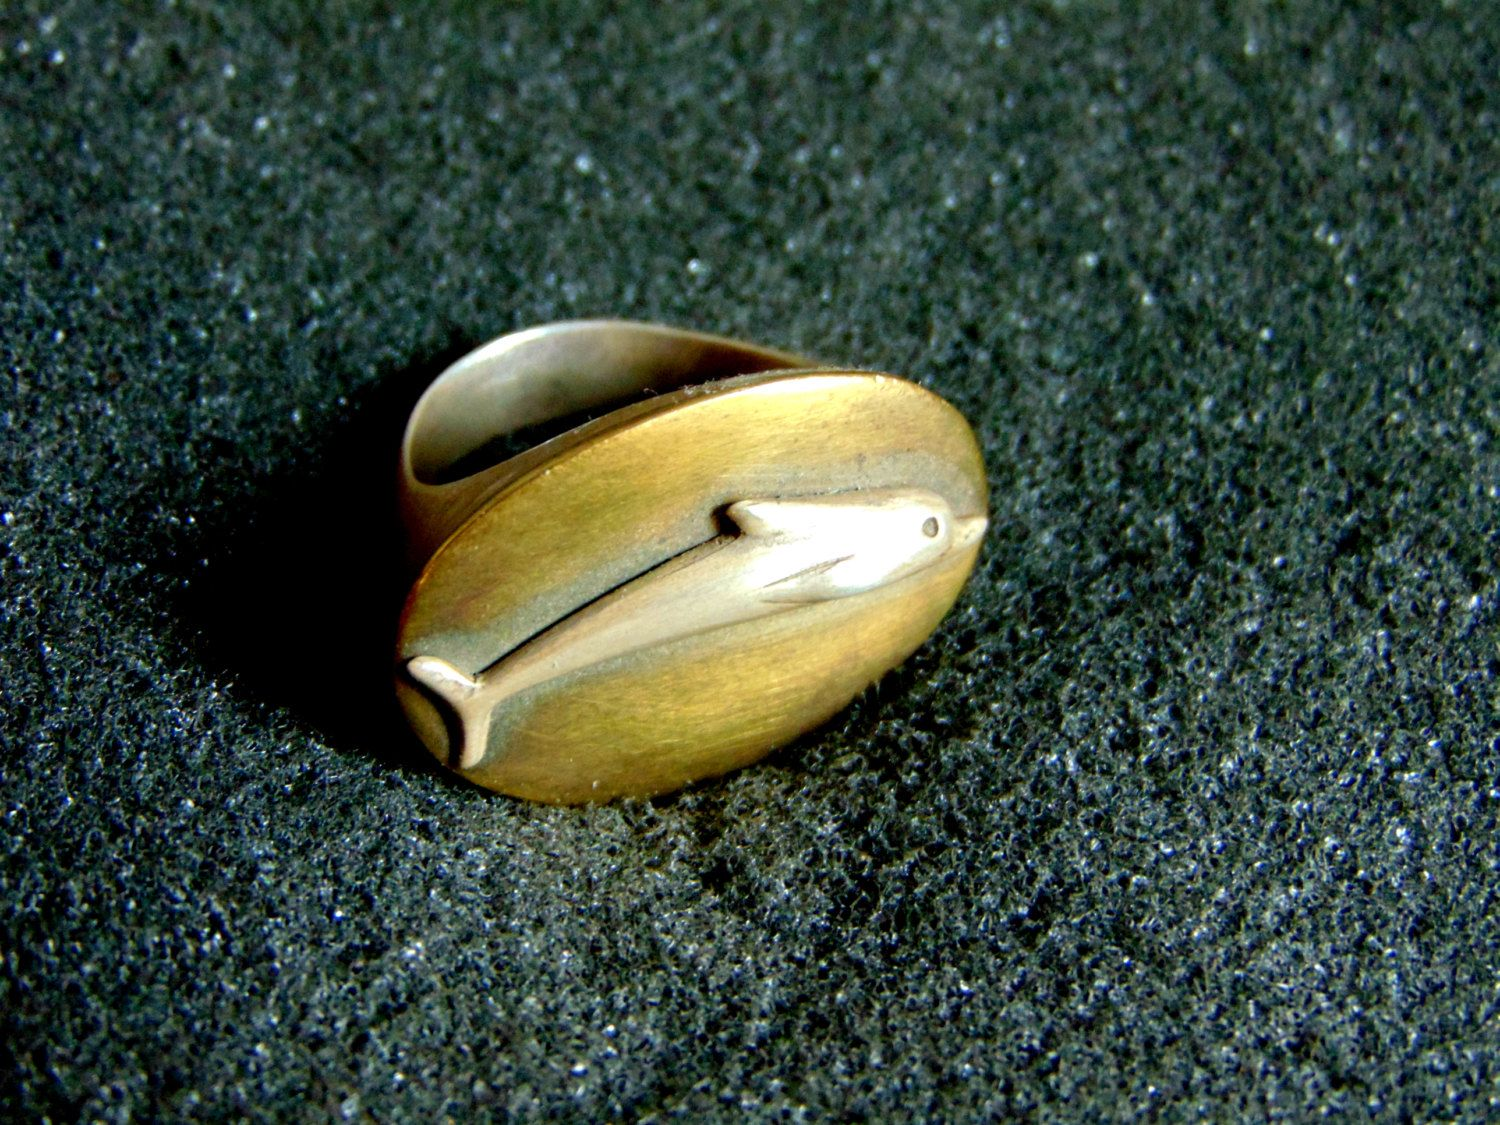 Silver Bronze Ring,Sterling Silver Dolphin Statament Ring,Unusual Silver 925 Rings, Unique Vintage Silver Rings,Artisan Jewelry,Greek Art by ArchipelagosBreeze on Etsy